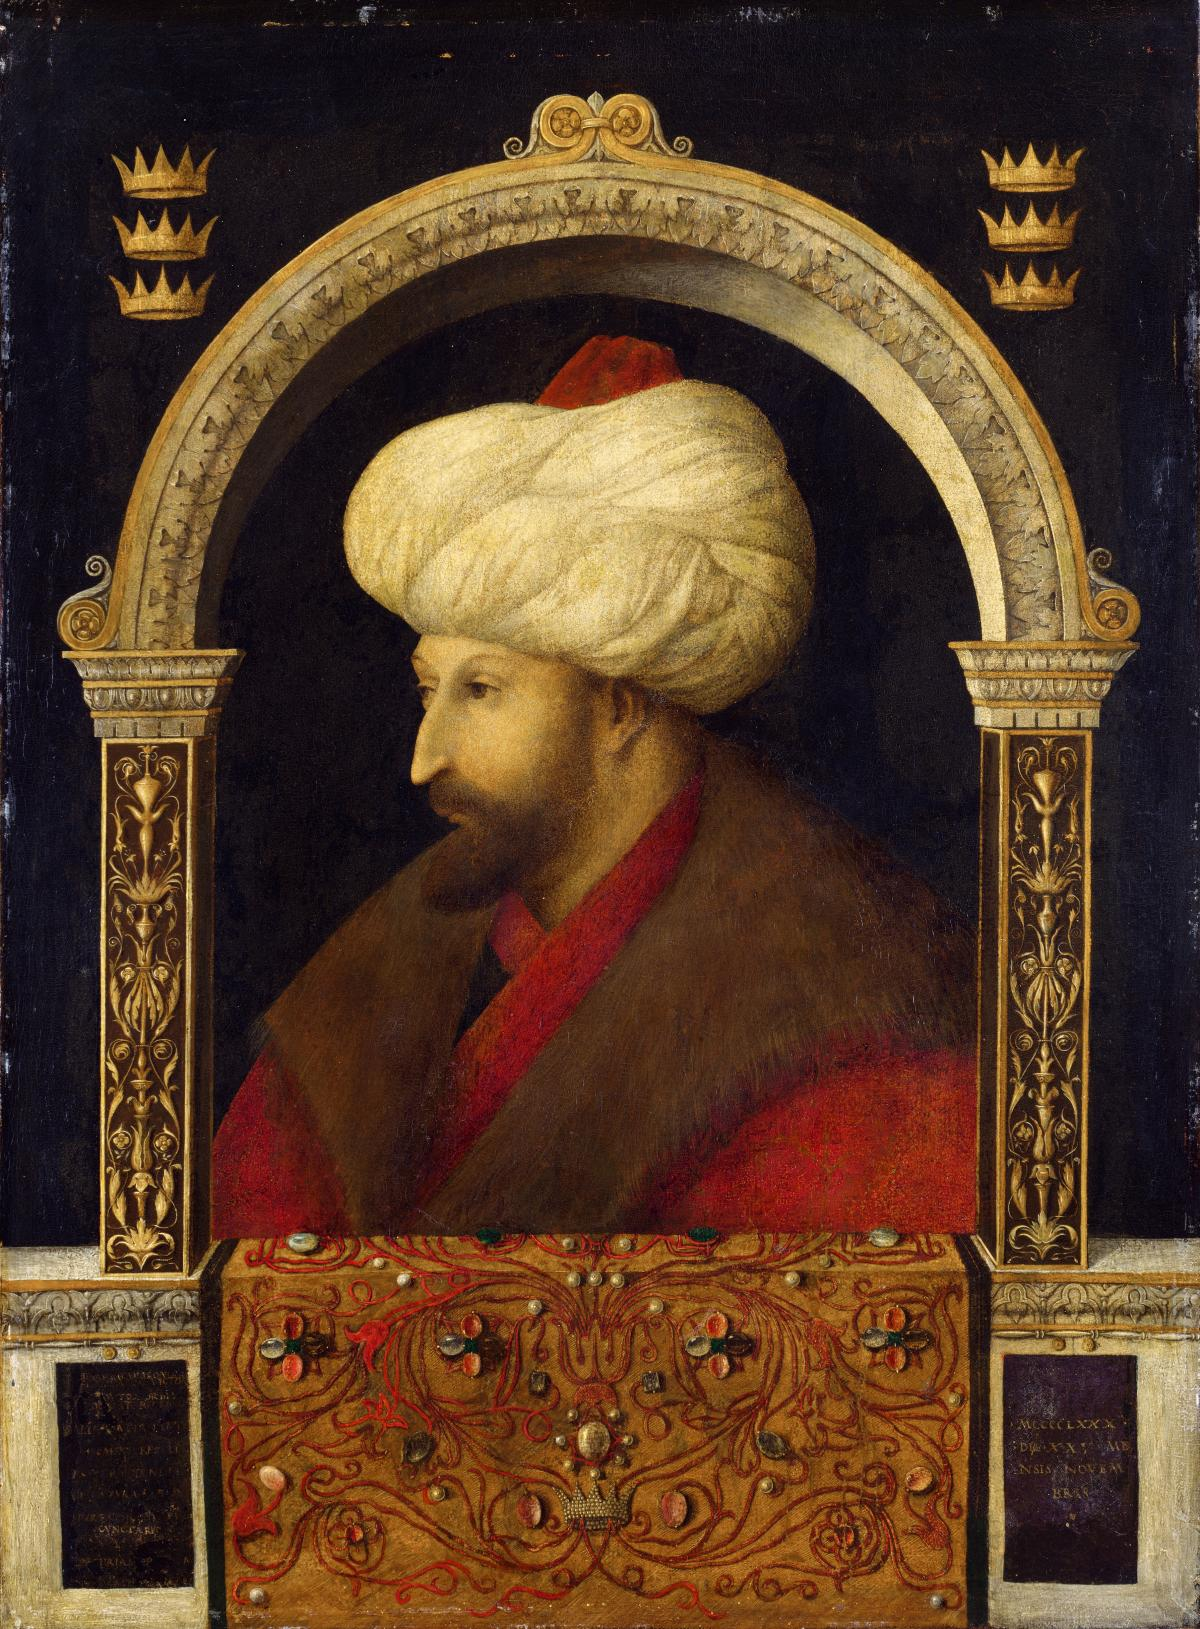 A man wearing a white turban, brown fur collar and red robe, framed by a golden arch